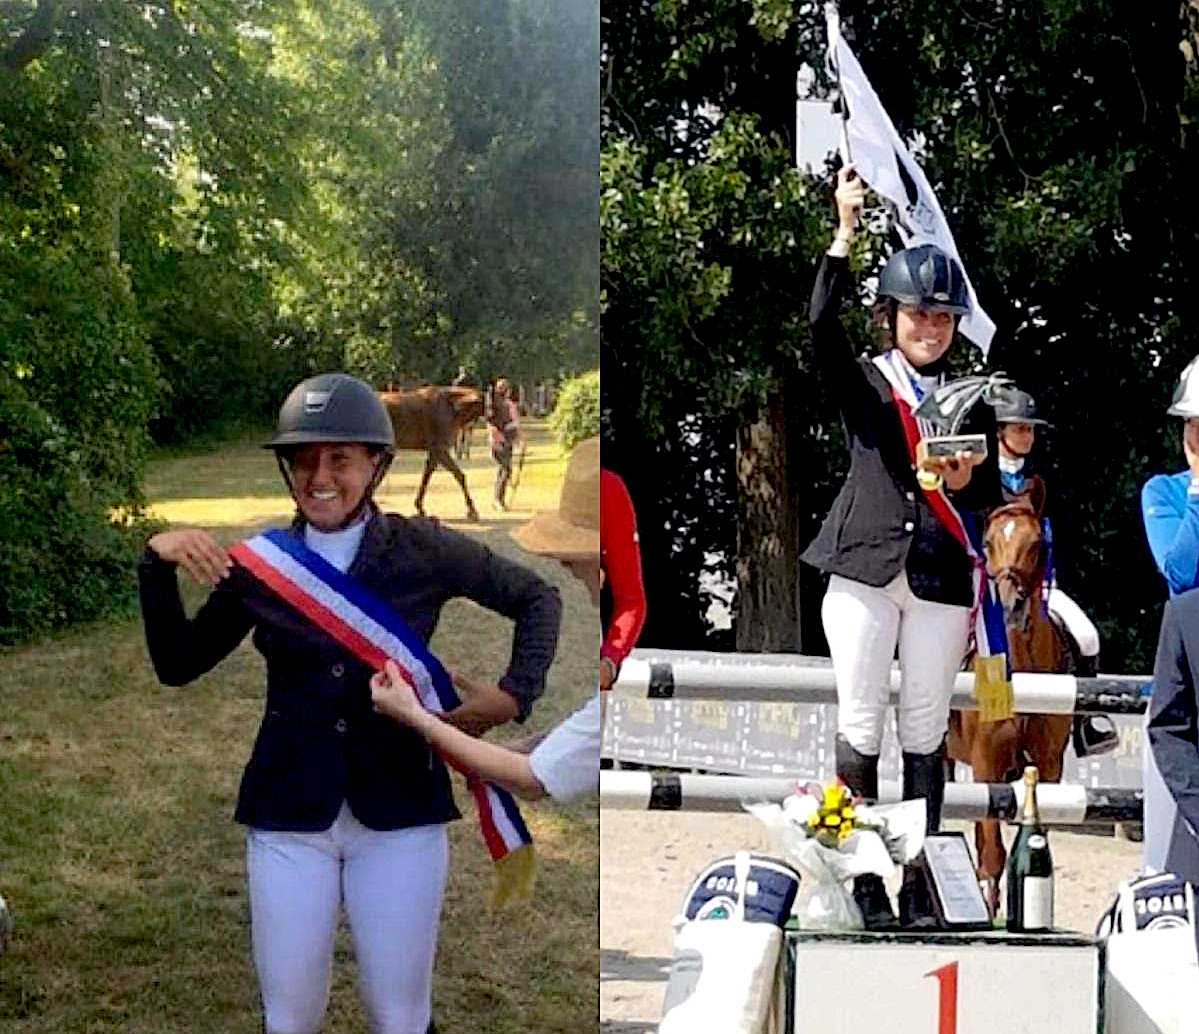 Sophie De Gentili championne de France saut d'obstacle Amateur 1 junior et Carla Martins championne de France de sauts d'obstacles amateur 2 junior.